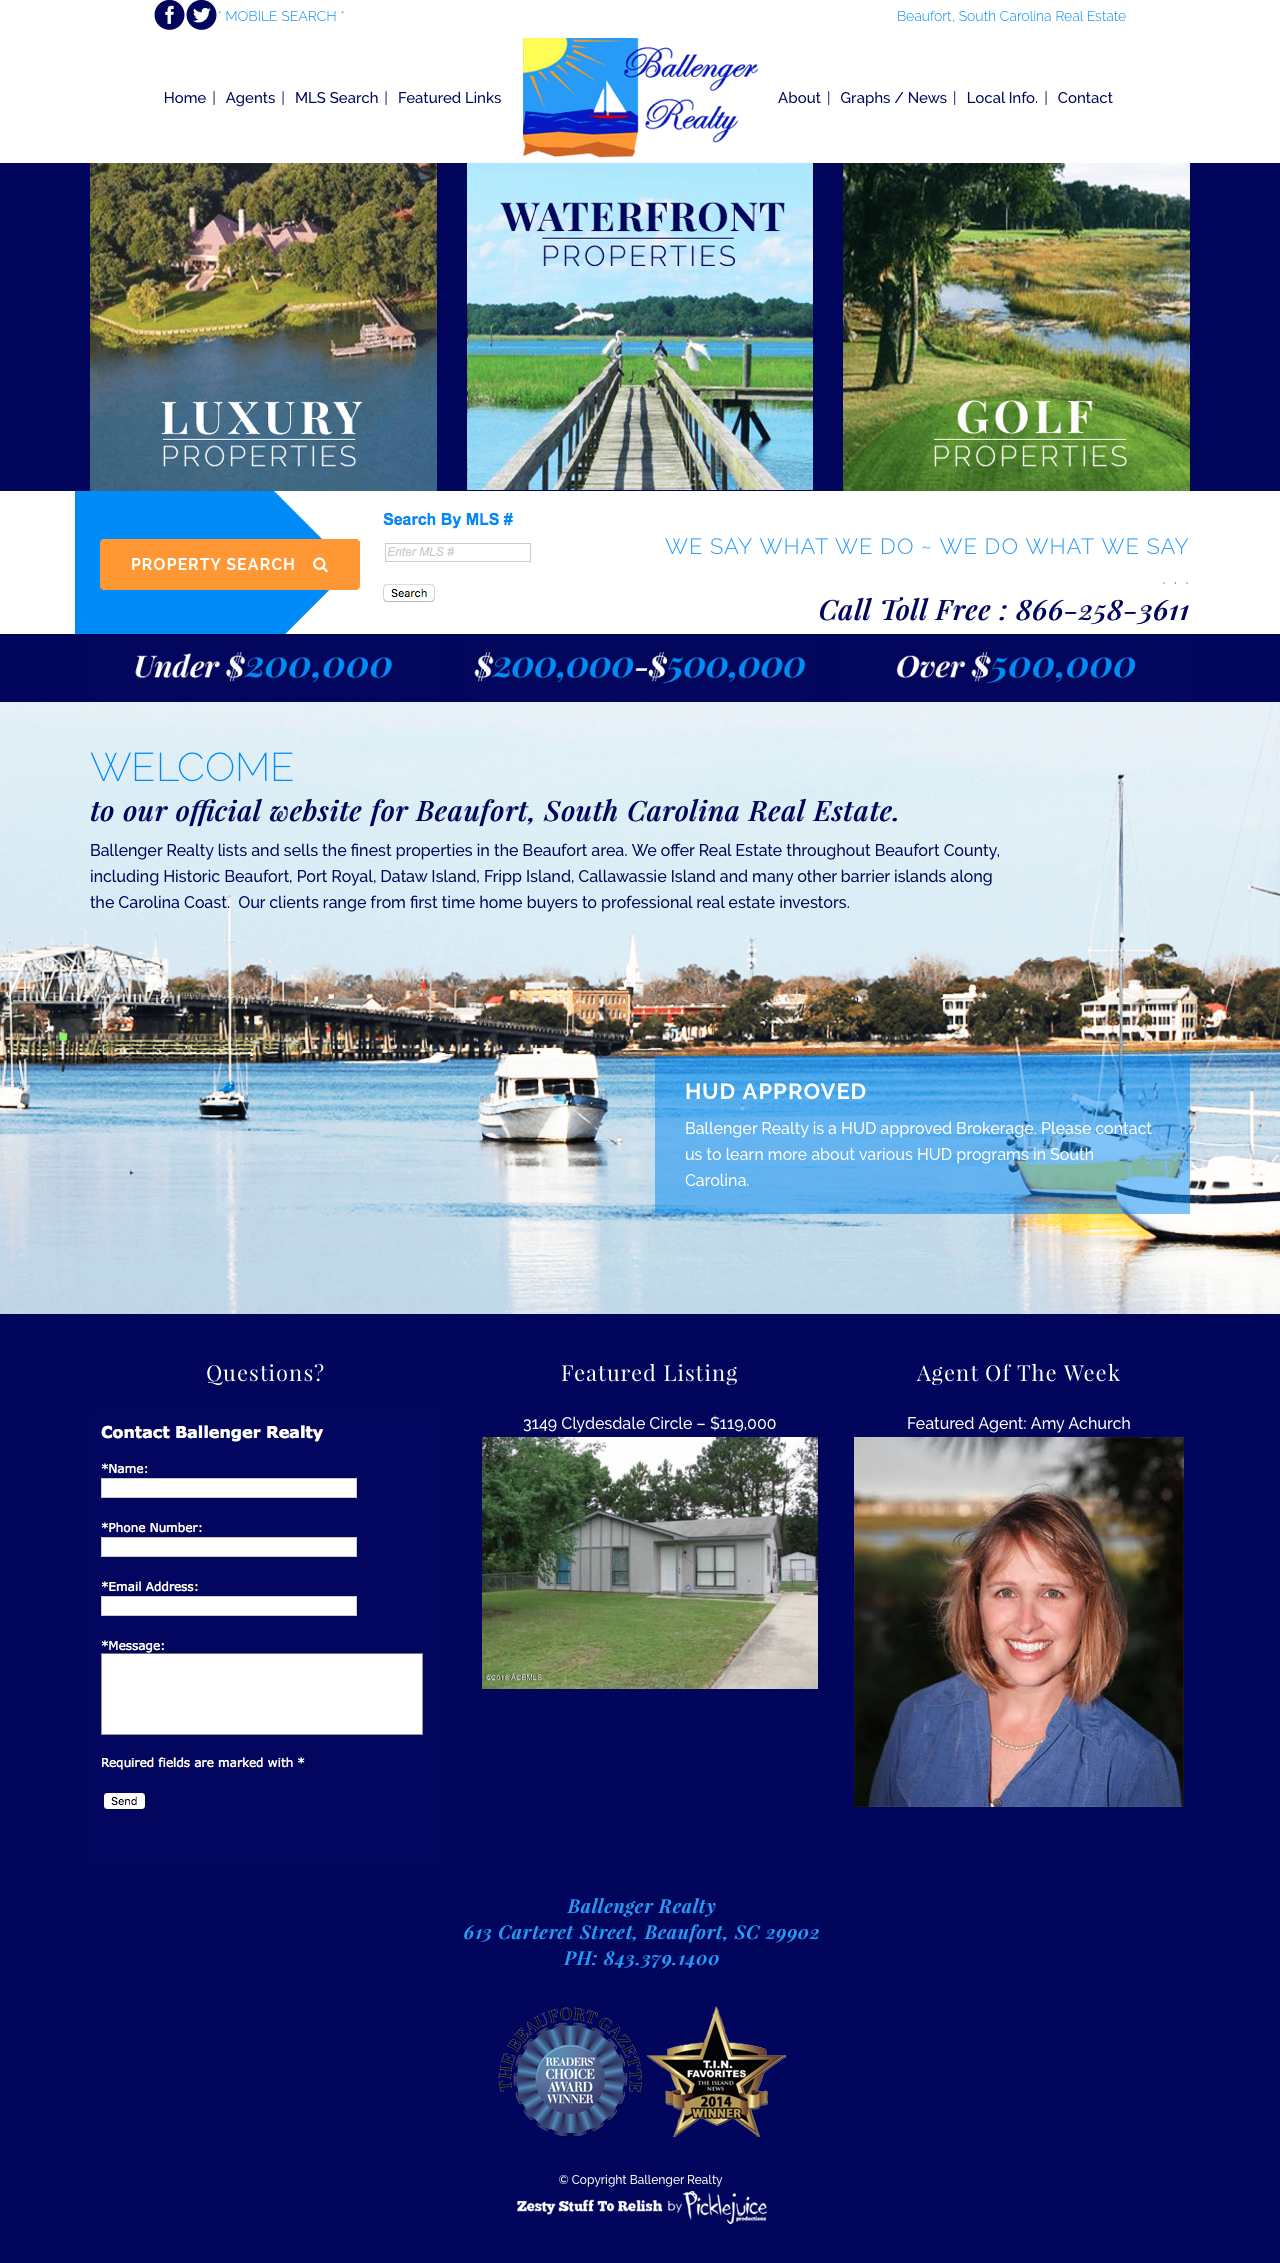 Ballenger Realty Web Design | Beaufort, South Carolina Real Estate Logo | PickleJuice Productions